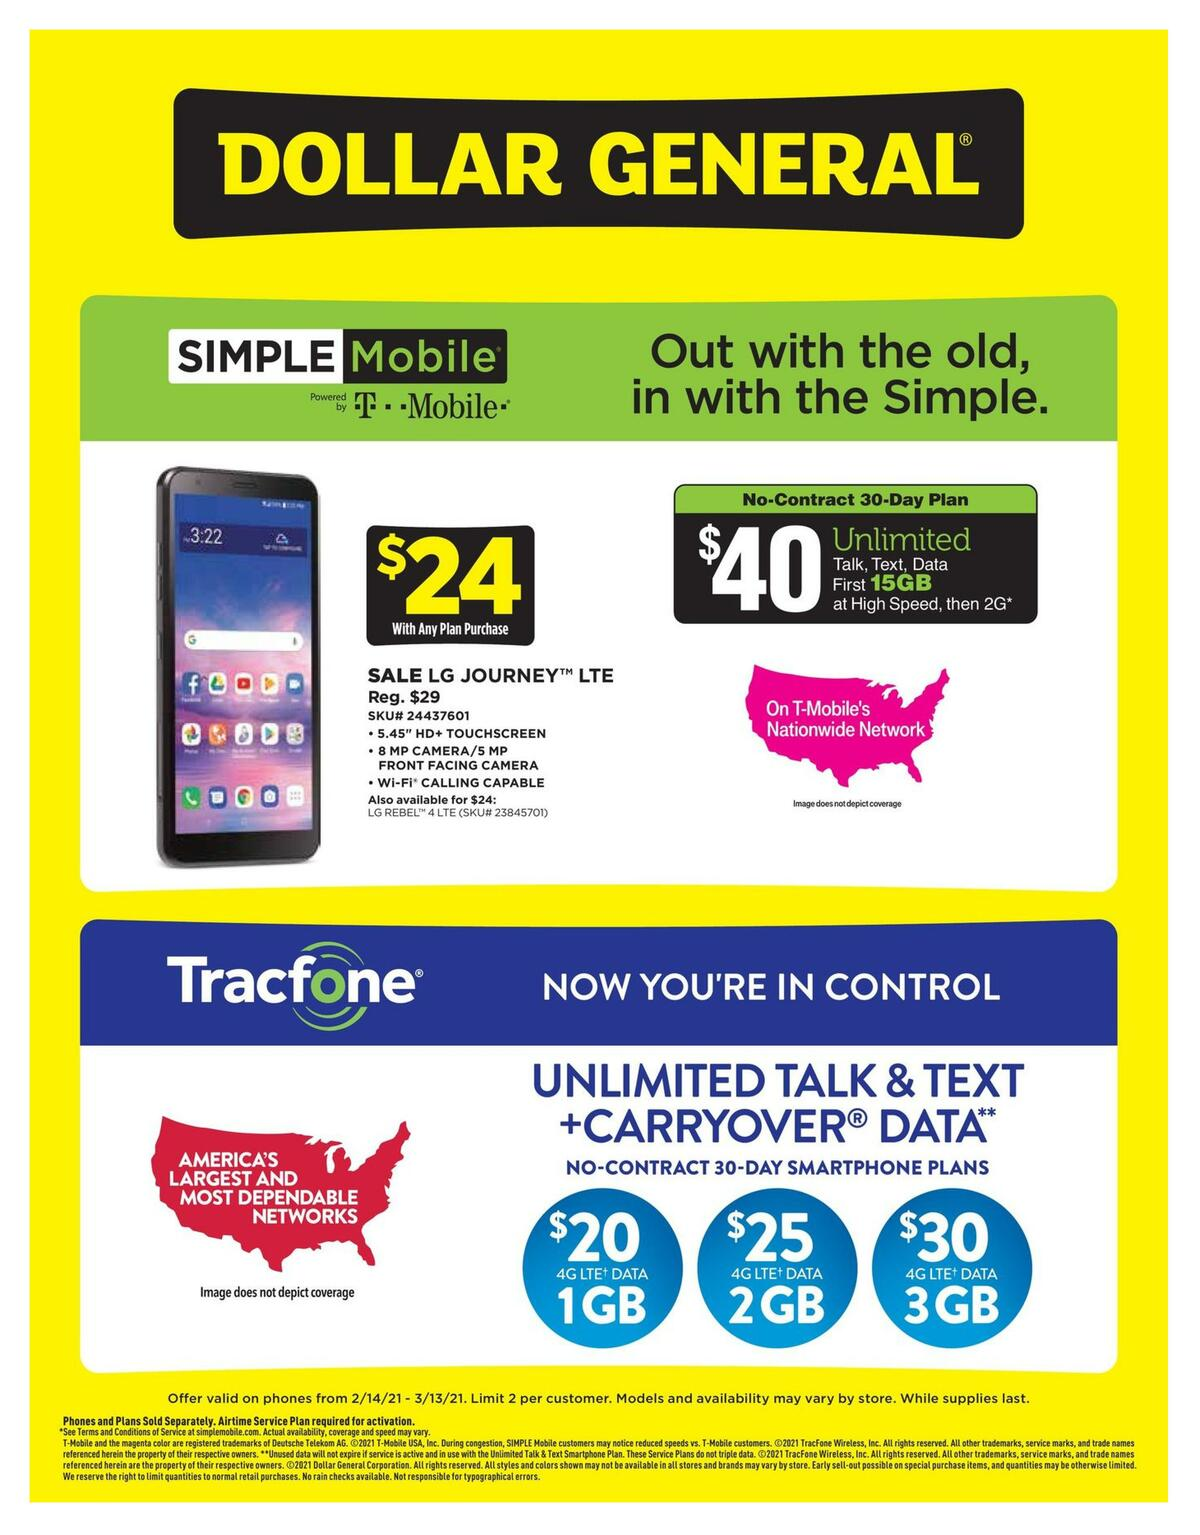 Dollar General Weekly Wireless Specials Weekly Ad from February 14